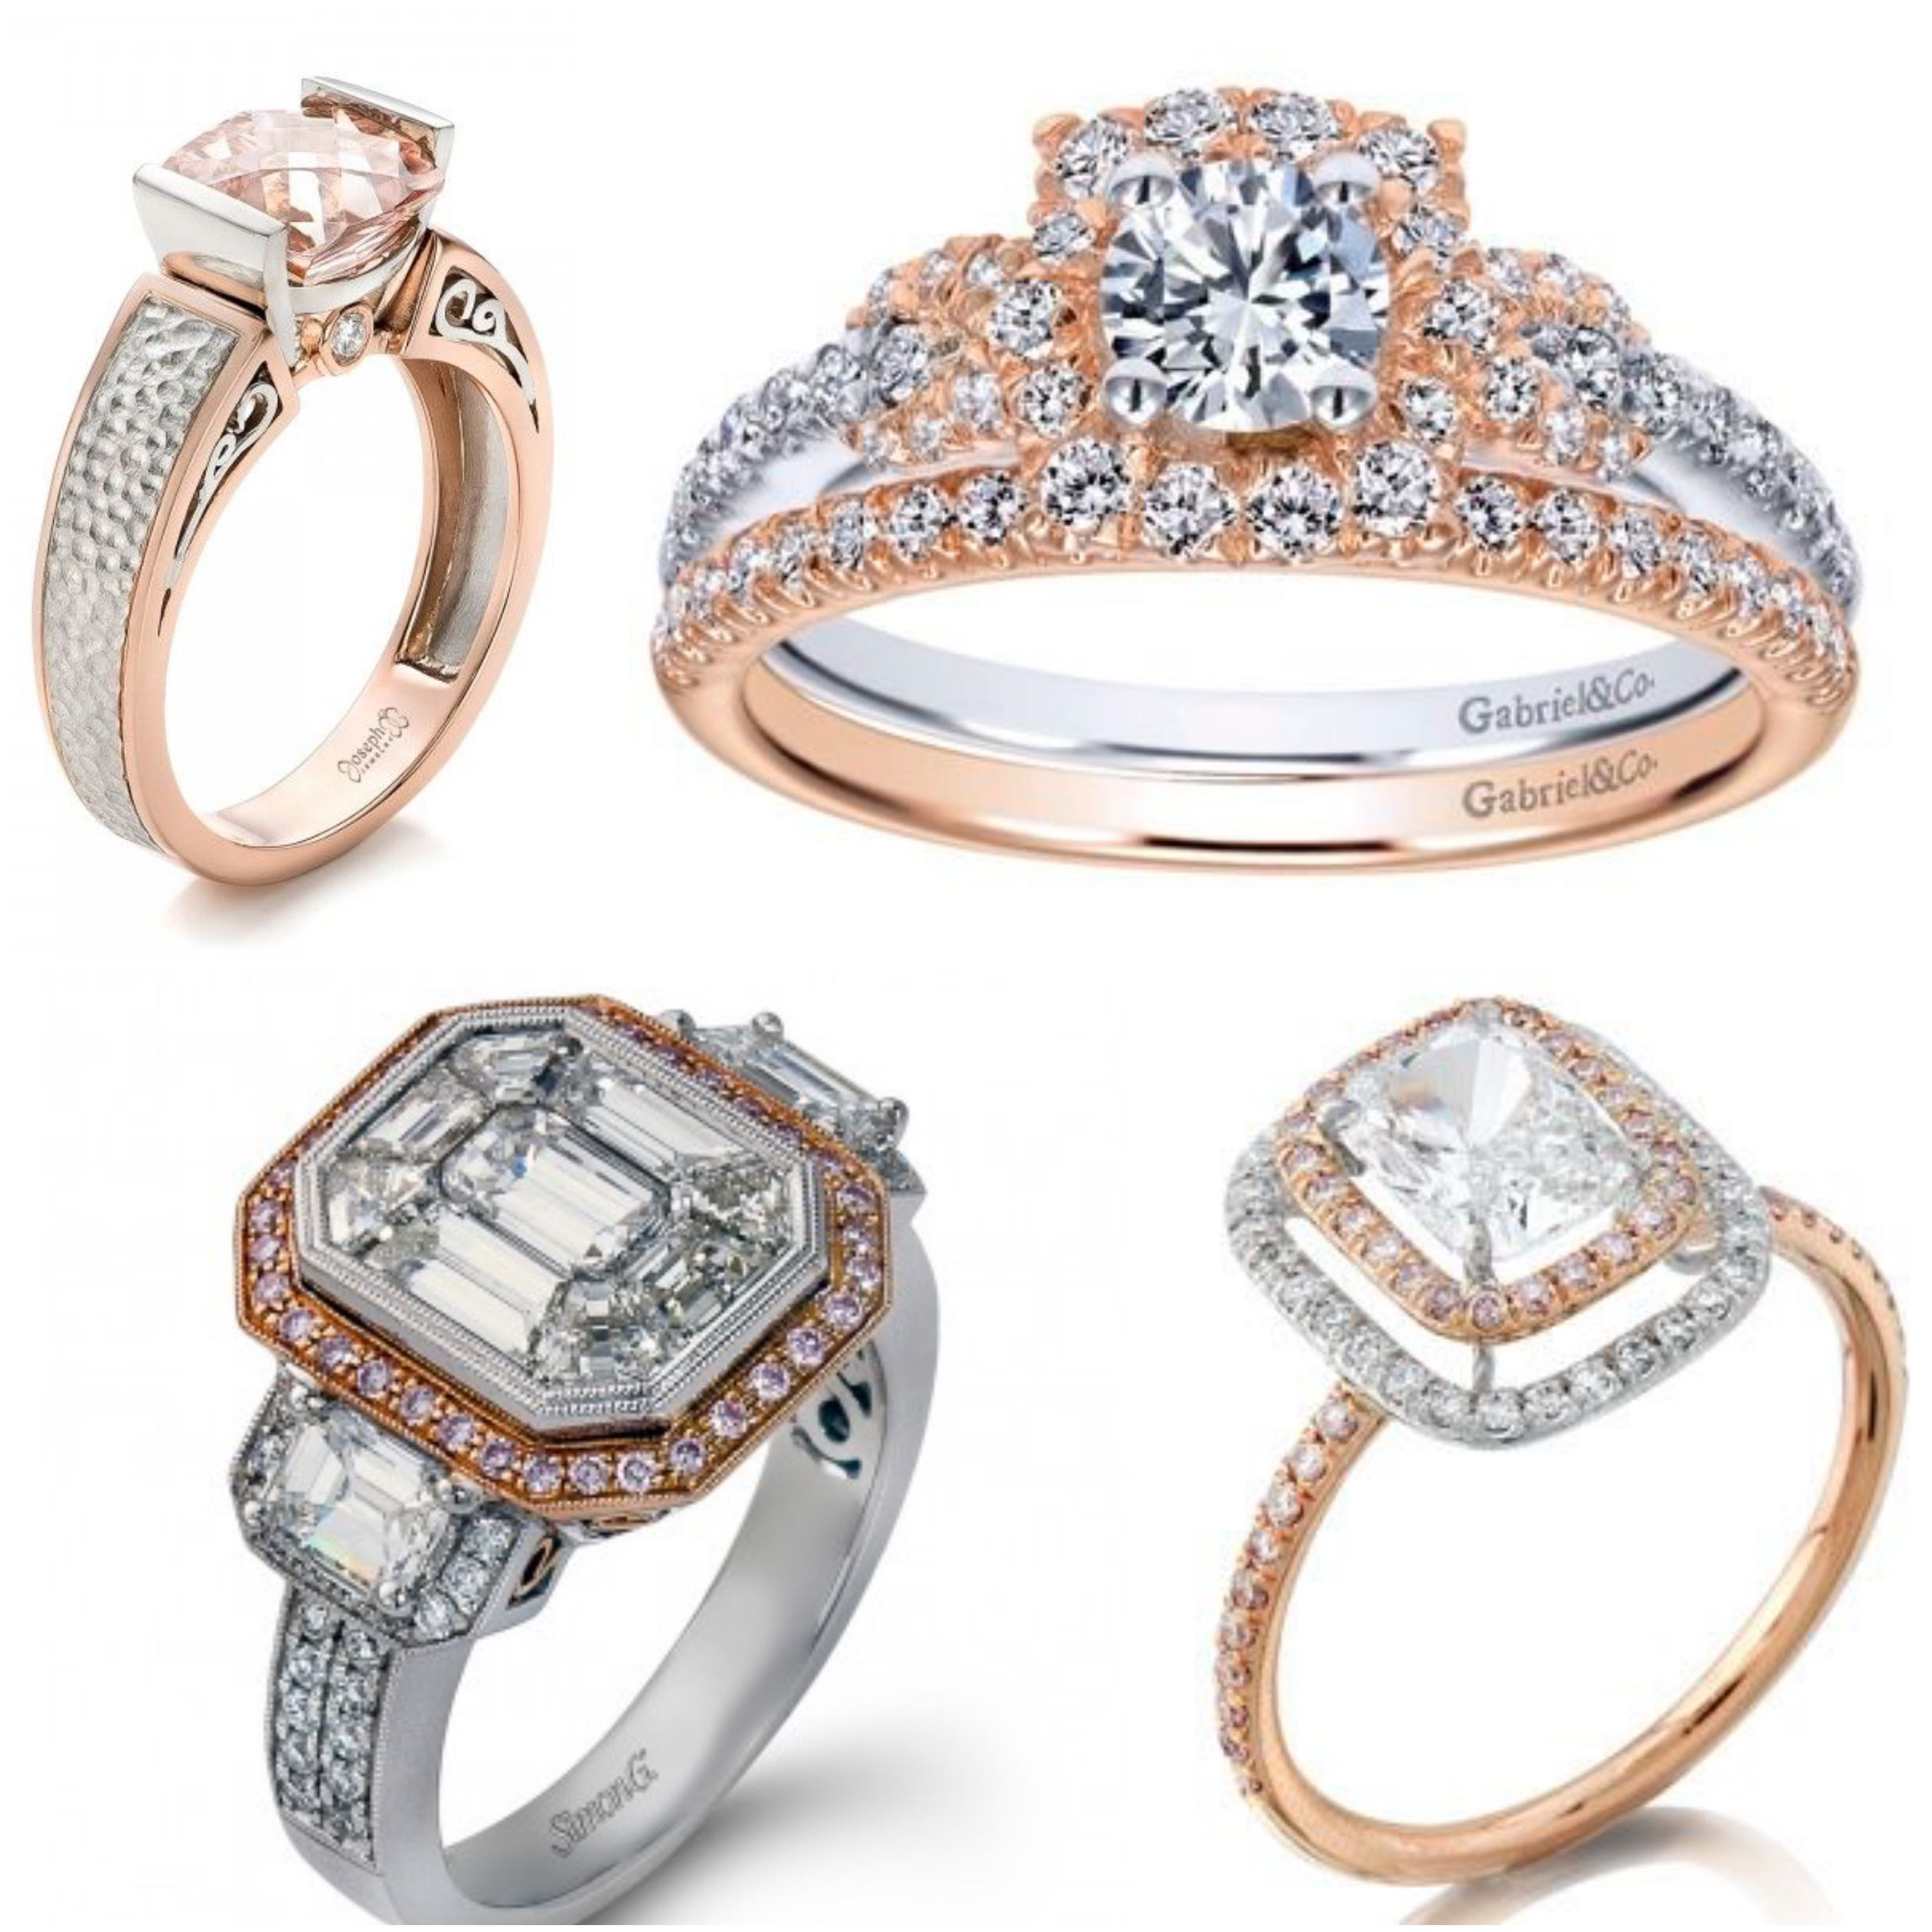 bridal abigail rings e wedding category archives simon jewellery jewelers engagement product top